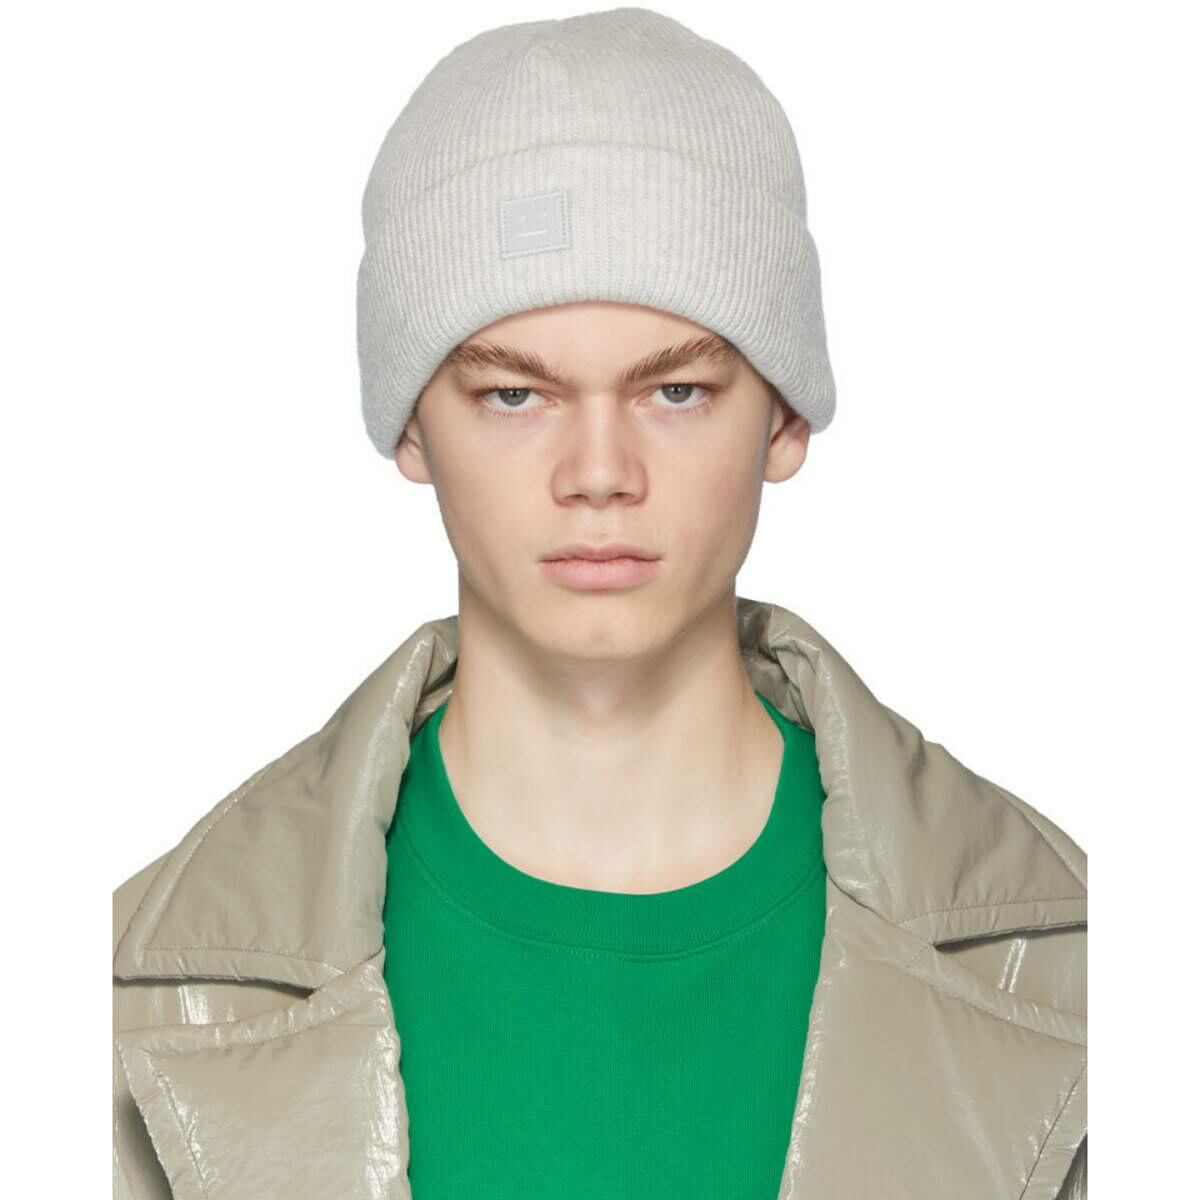 Acne Studios Grey Patch Beanie Ssense USA MEN Men ACCESSORIES Mens HATS